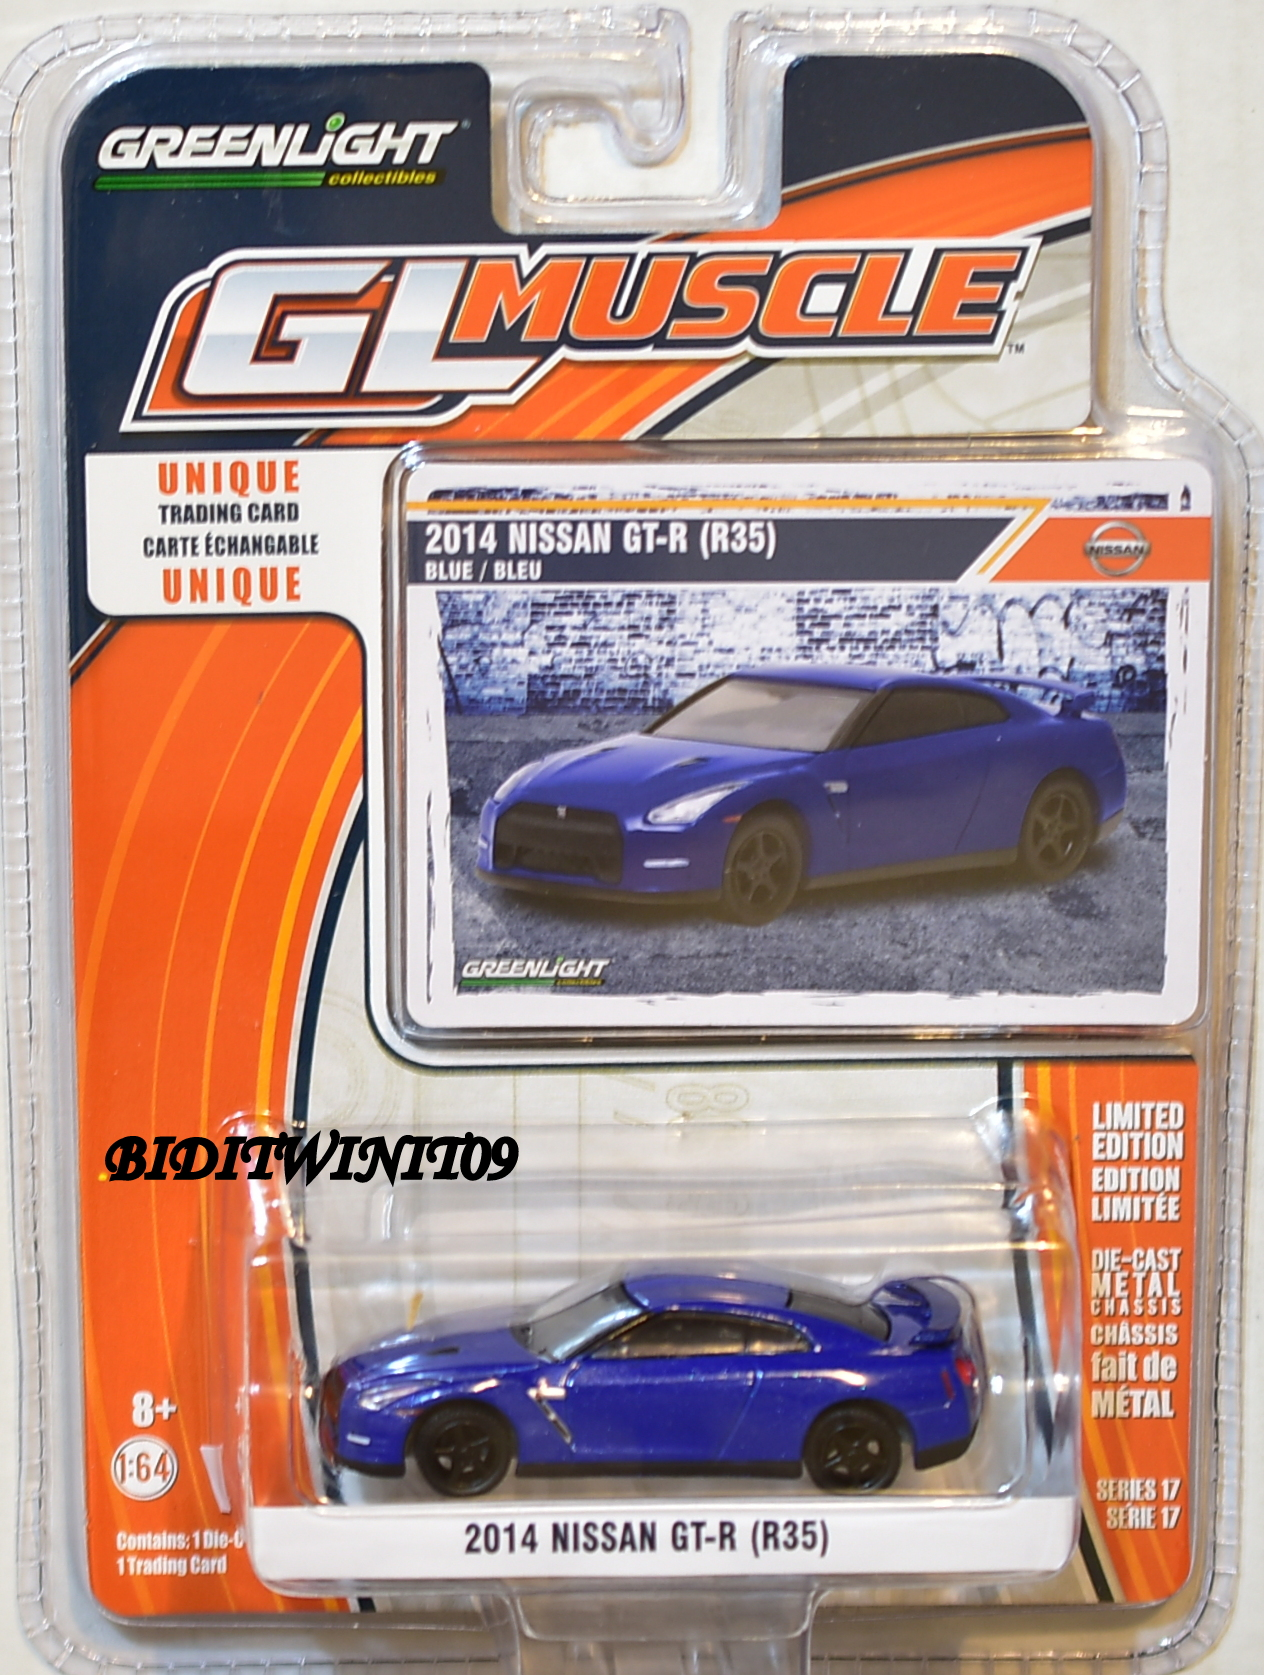 GREENLIGHT GLMUSCLE SERIES 17 2014 NISSAN GT-R (R35) BLUE